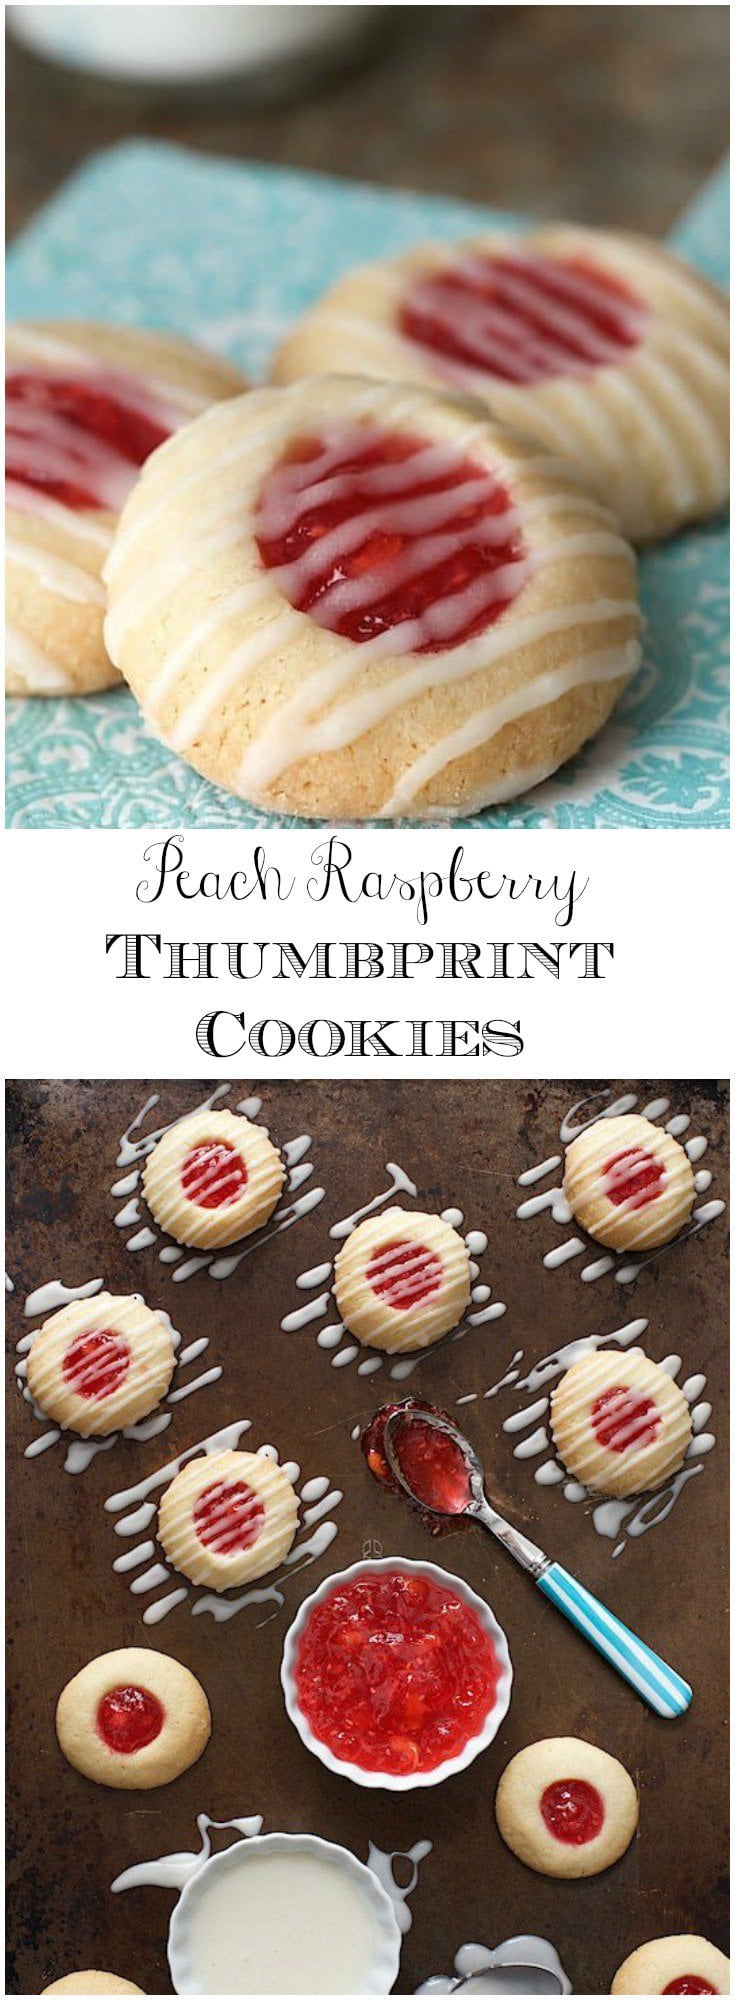 With only five ingredients, these buttery, melt-in-your-mouth Peach Raspberry Thumbprint Cookies are super easy; and incredibly delicious!